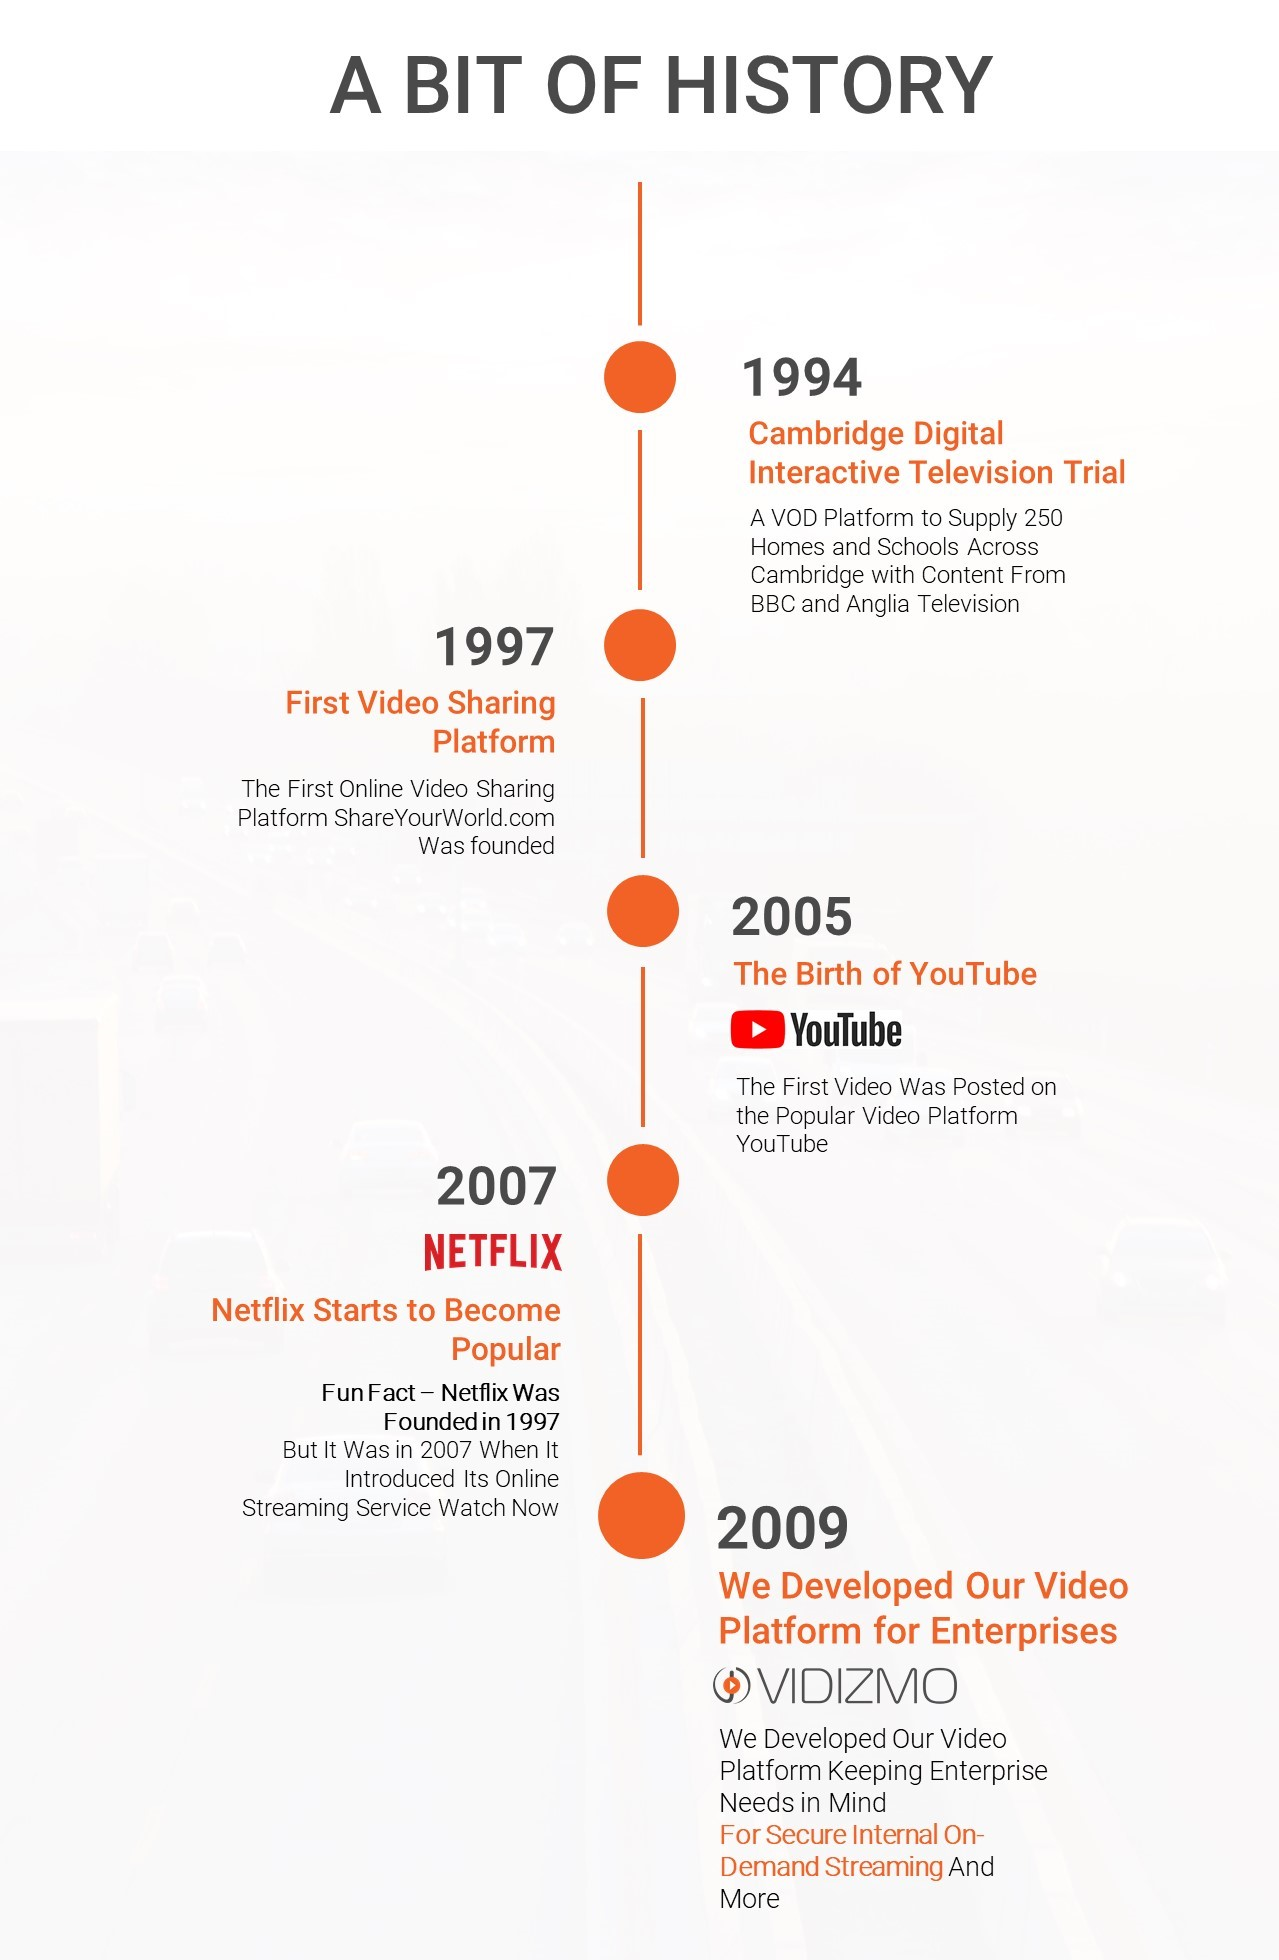 The History of Video Platforms Infographic